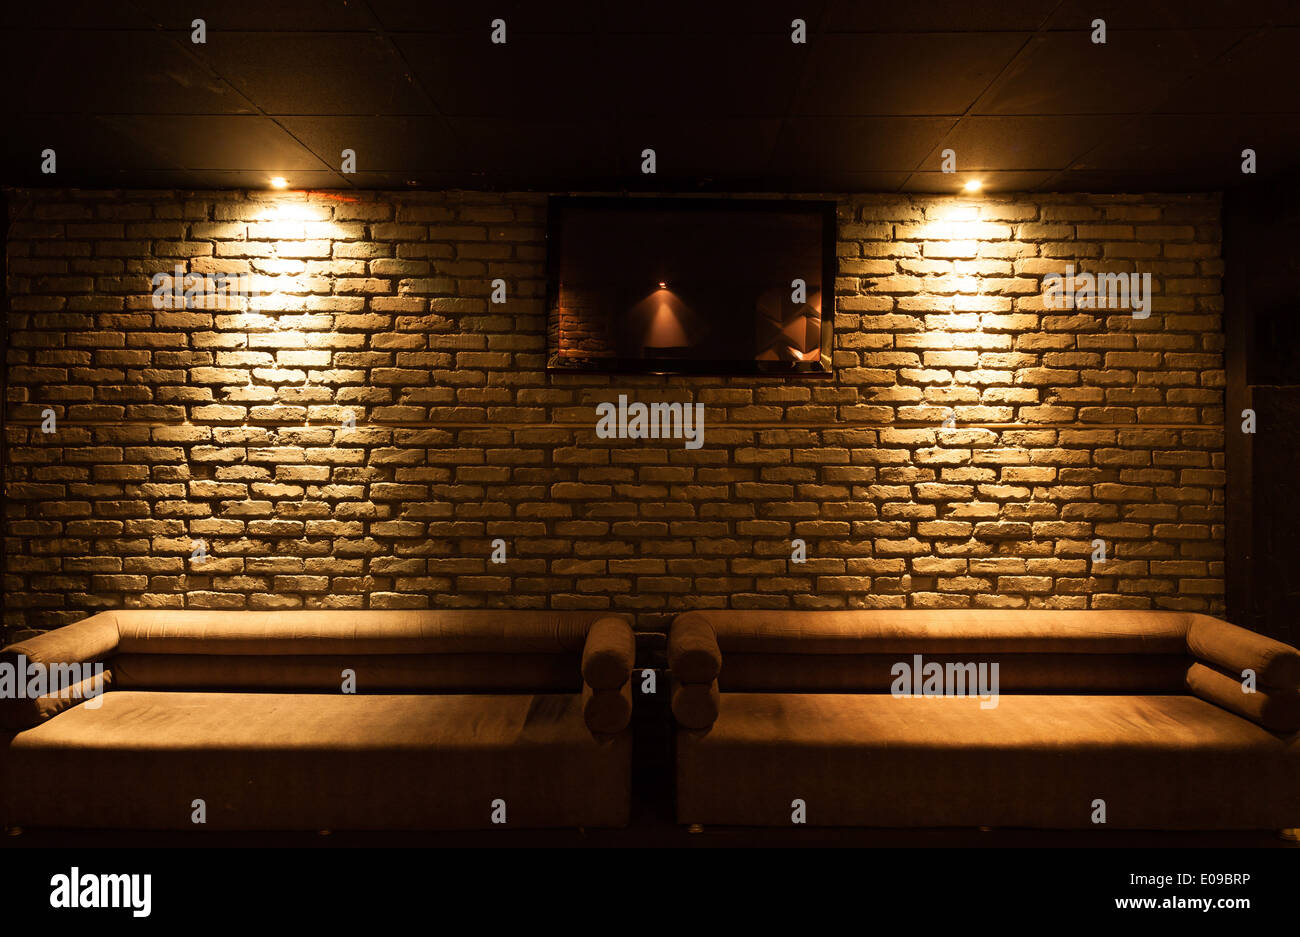 Brick wall lighting Garden Old Type Brick Wall Texture Front Face And Two Sofa With Local Lighting Alamy Old Type Brick Wall Texture Front Face And Two Sofa With Local Stock